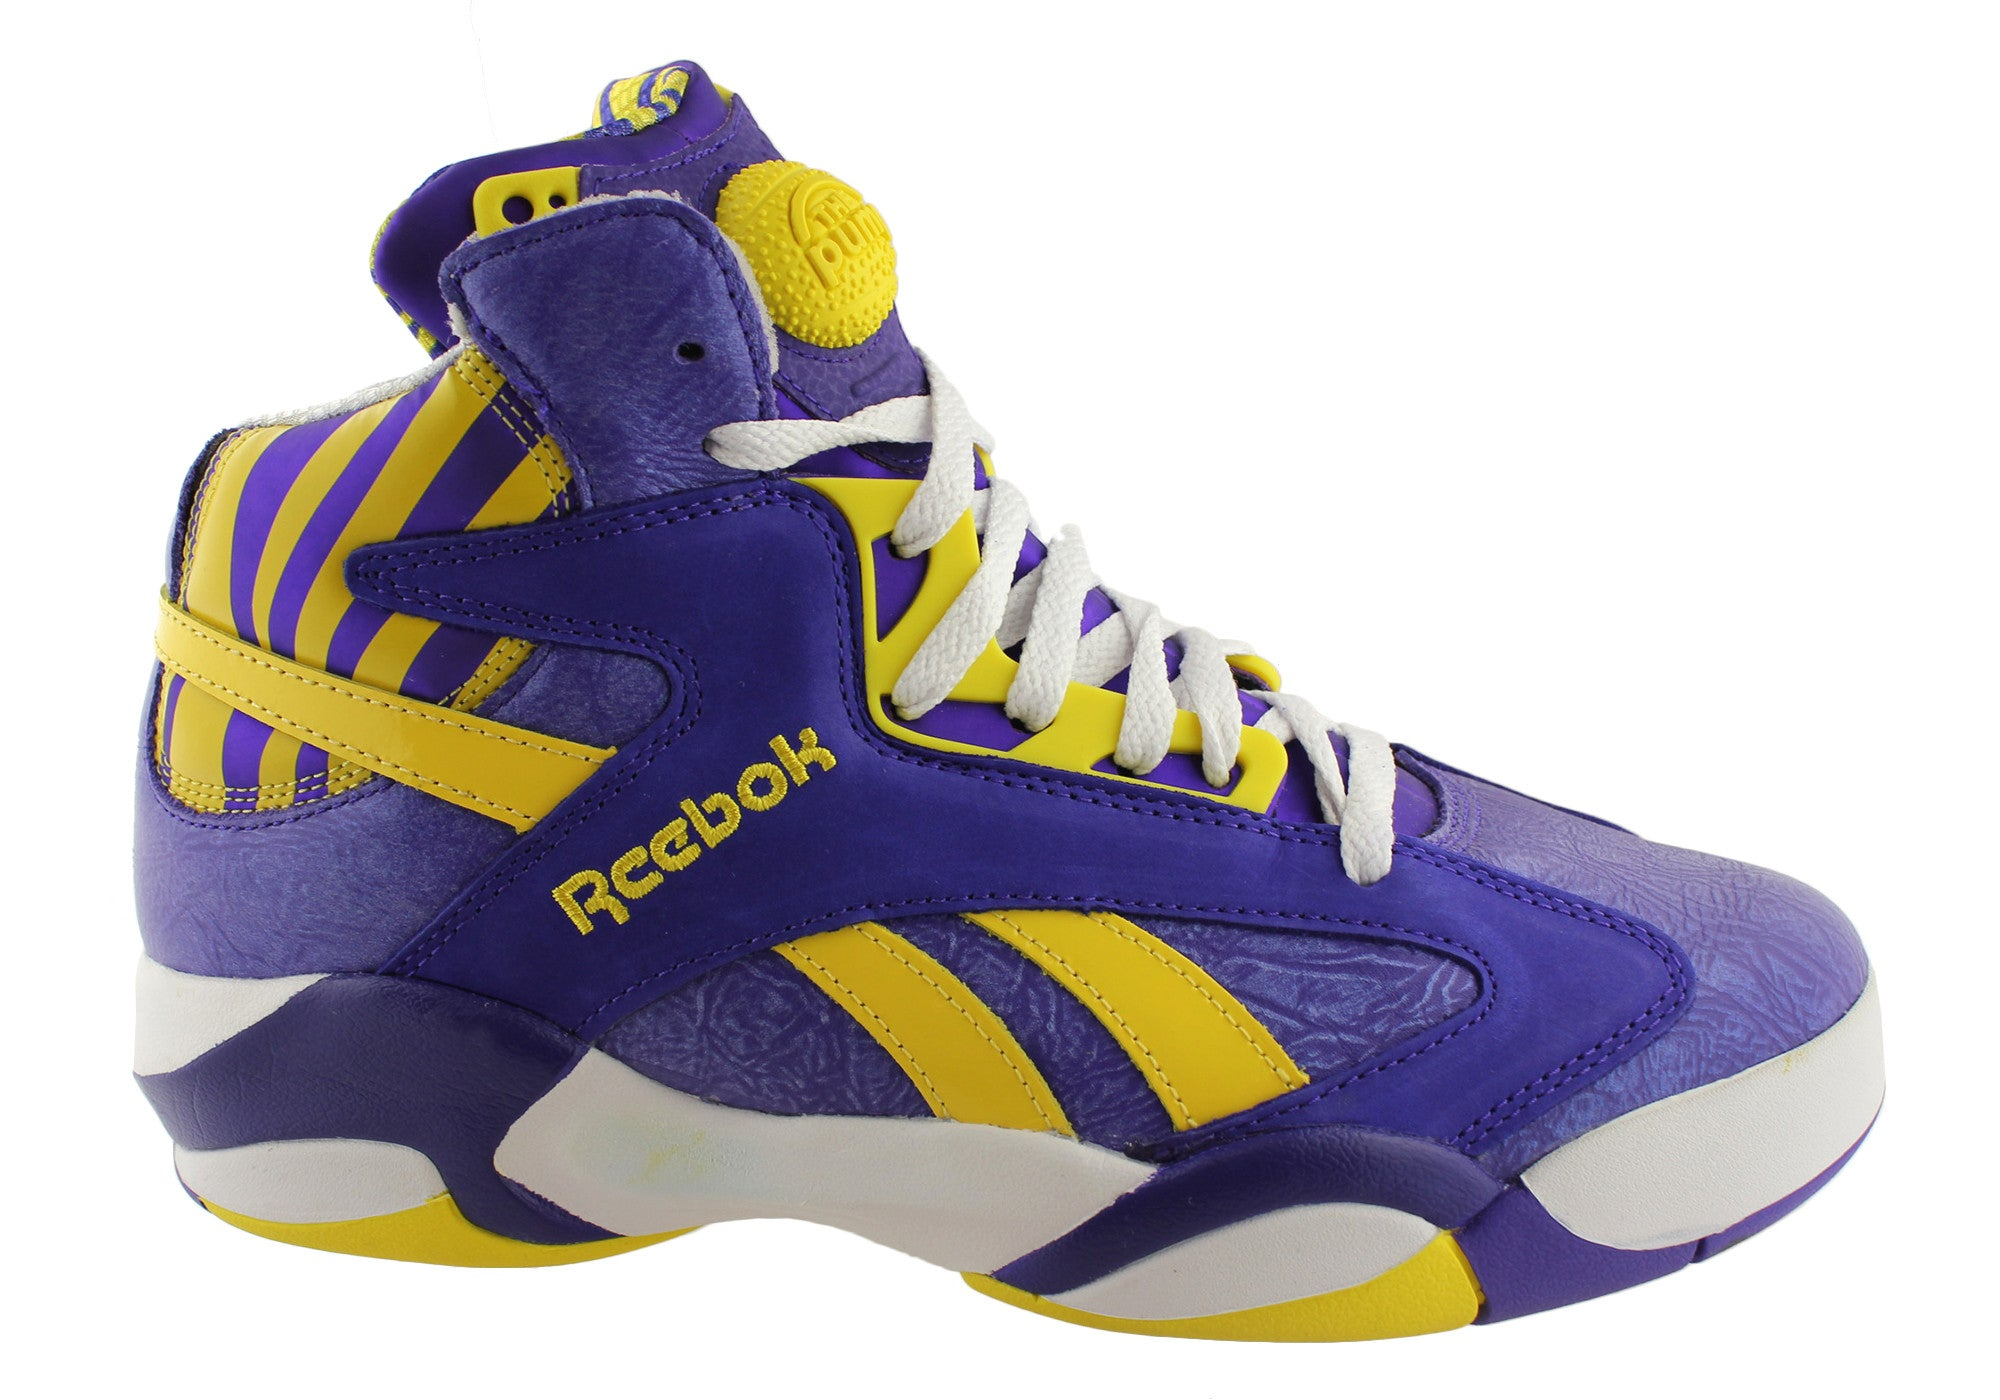 Details about NEW REEBOK MENS PUMP SHAQ ATTACK BASKETBALL BOOTS